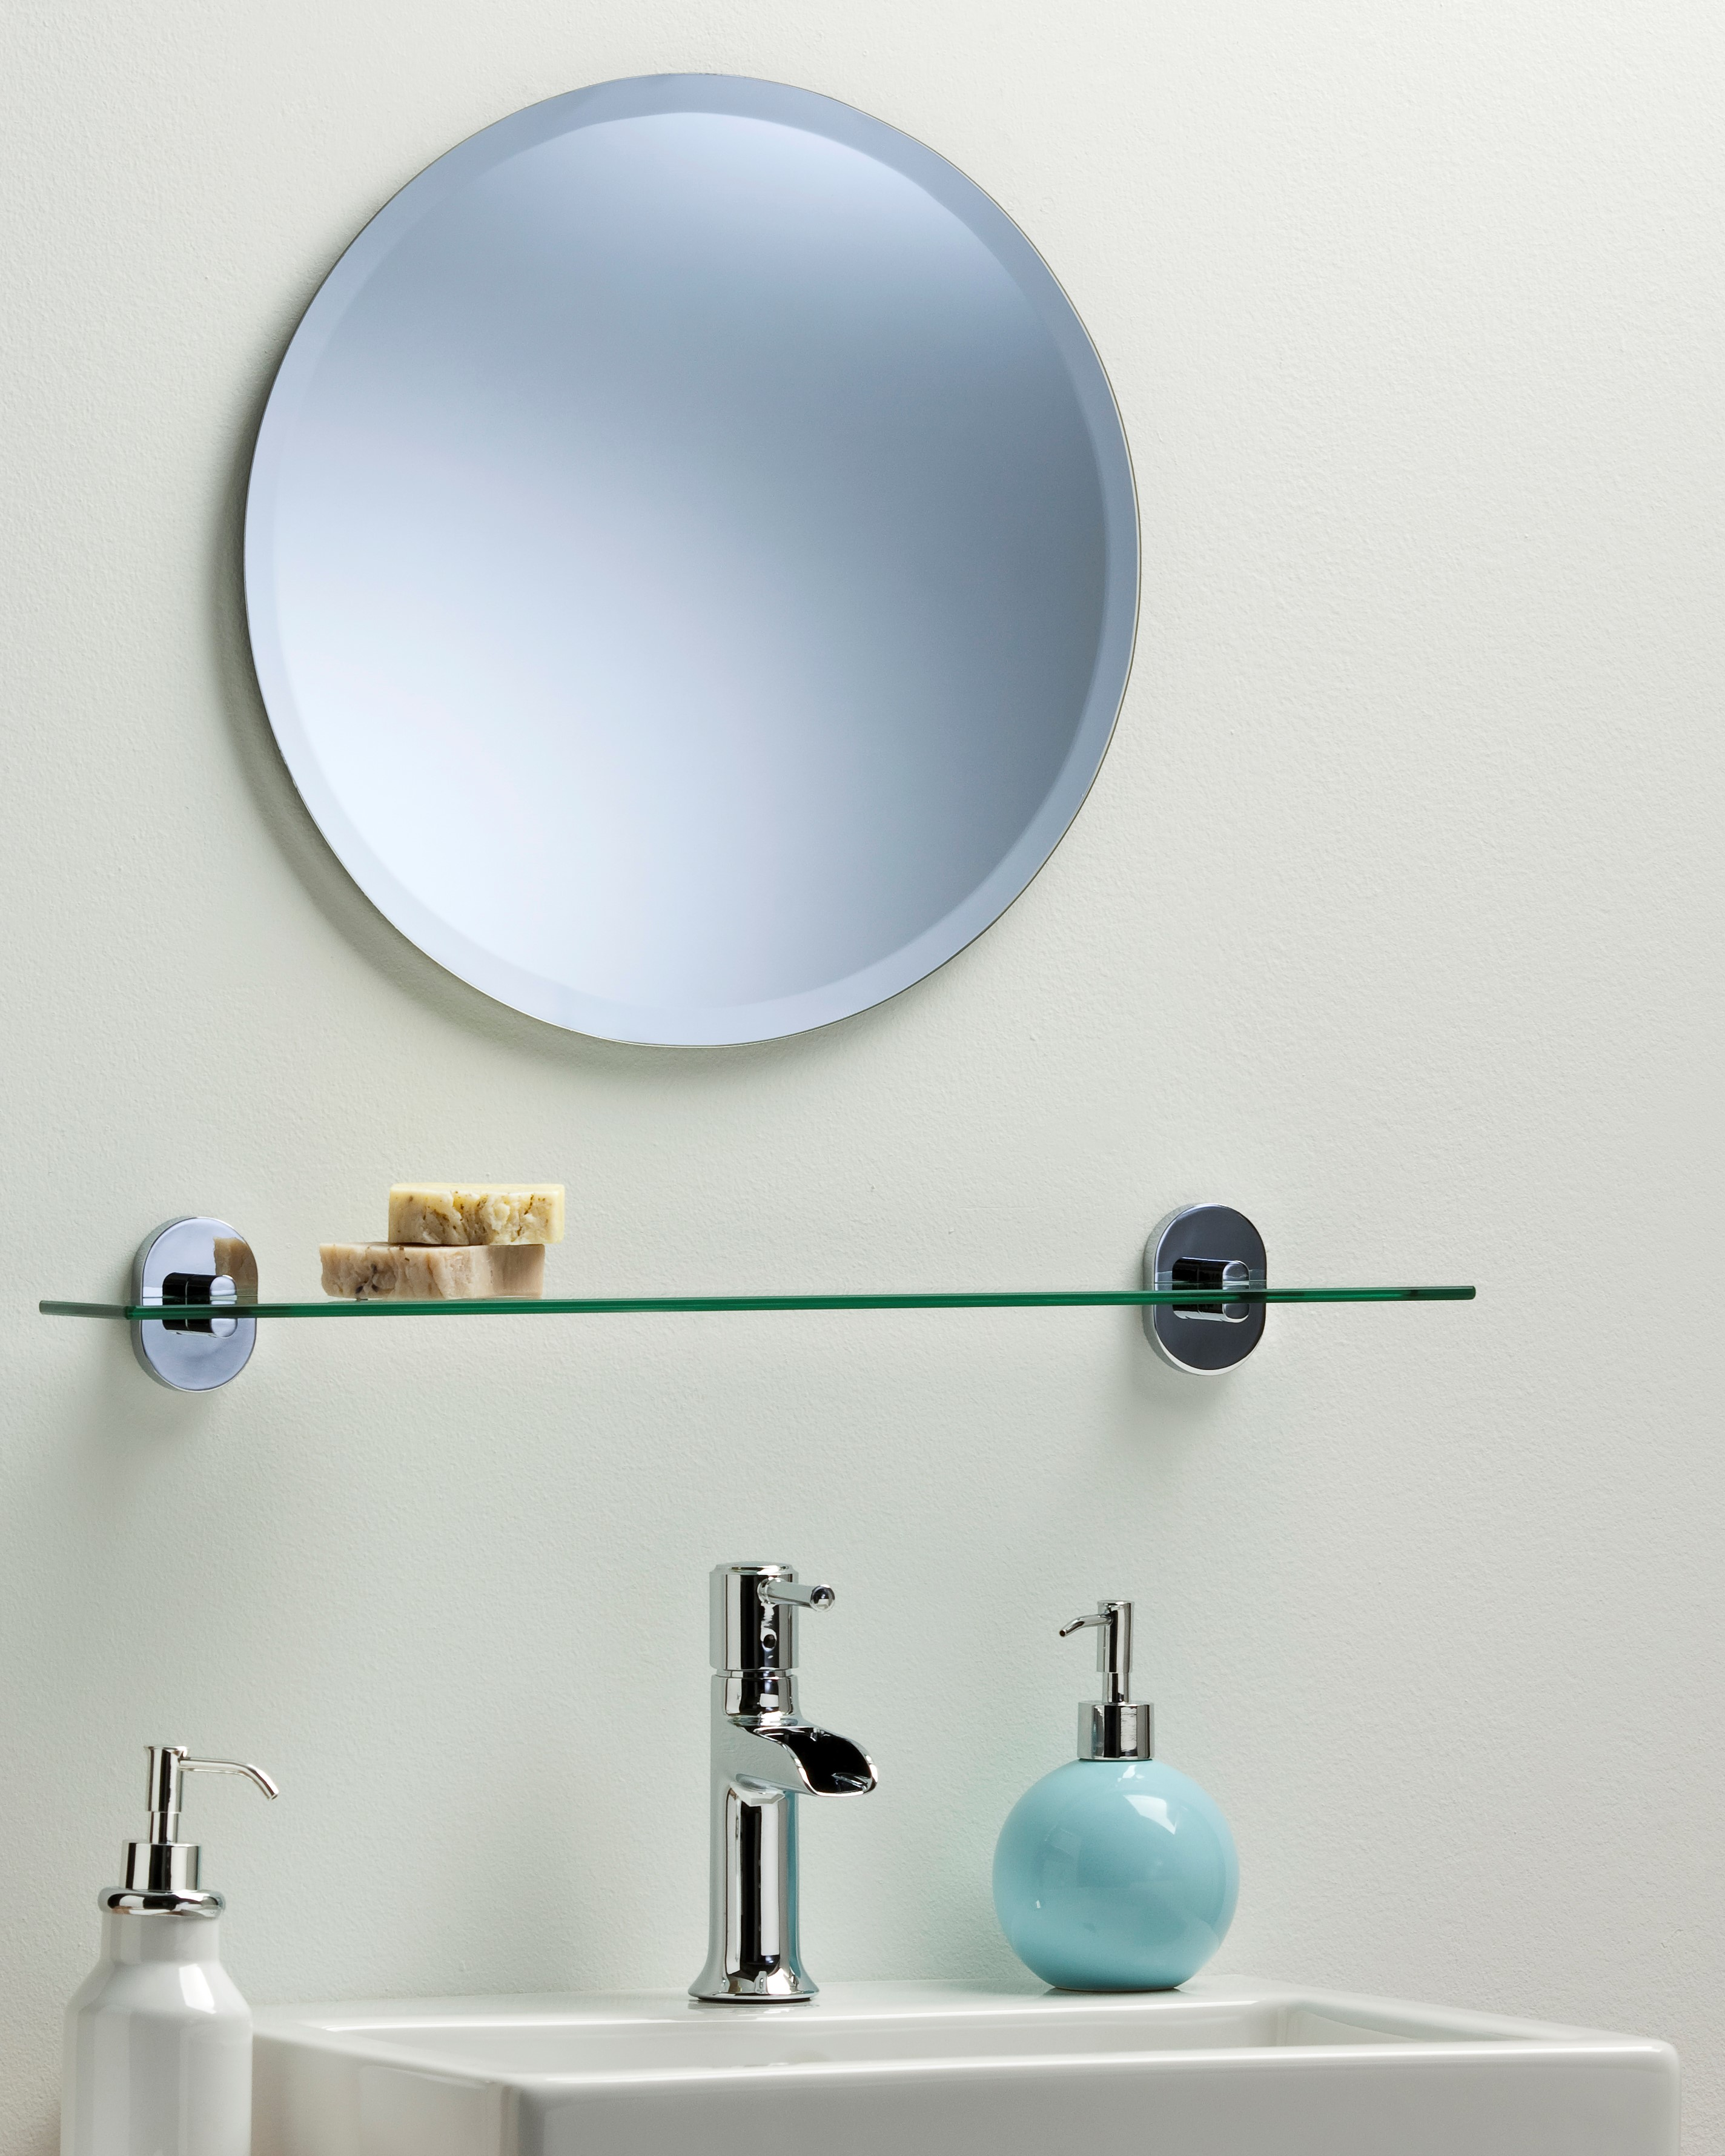 Bathroom wall mirror simple design round with bevel frameless plain ebay Neue design bathroom mirror